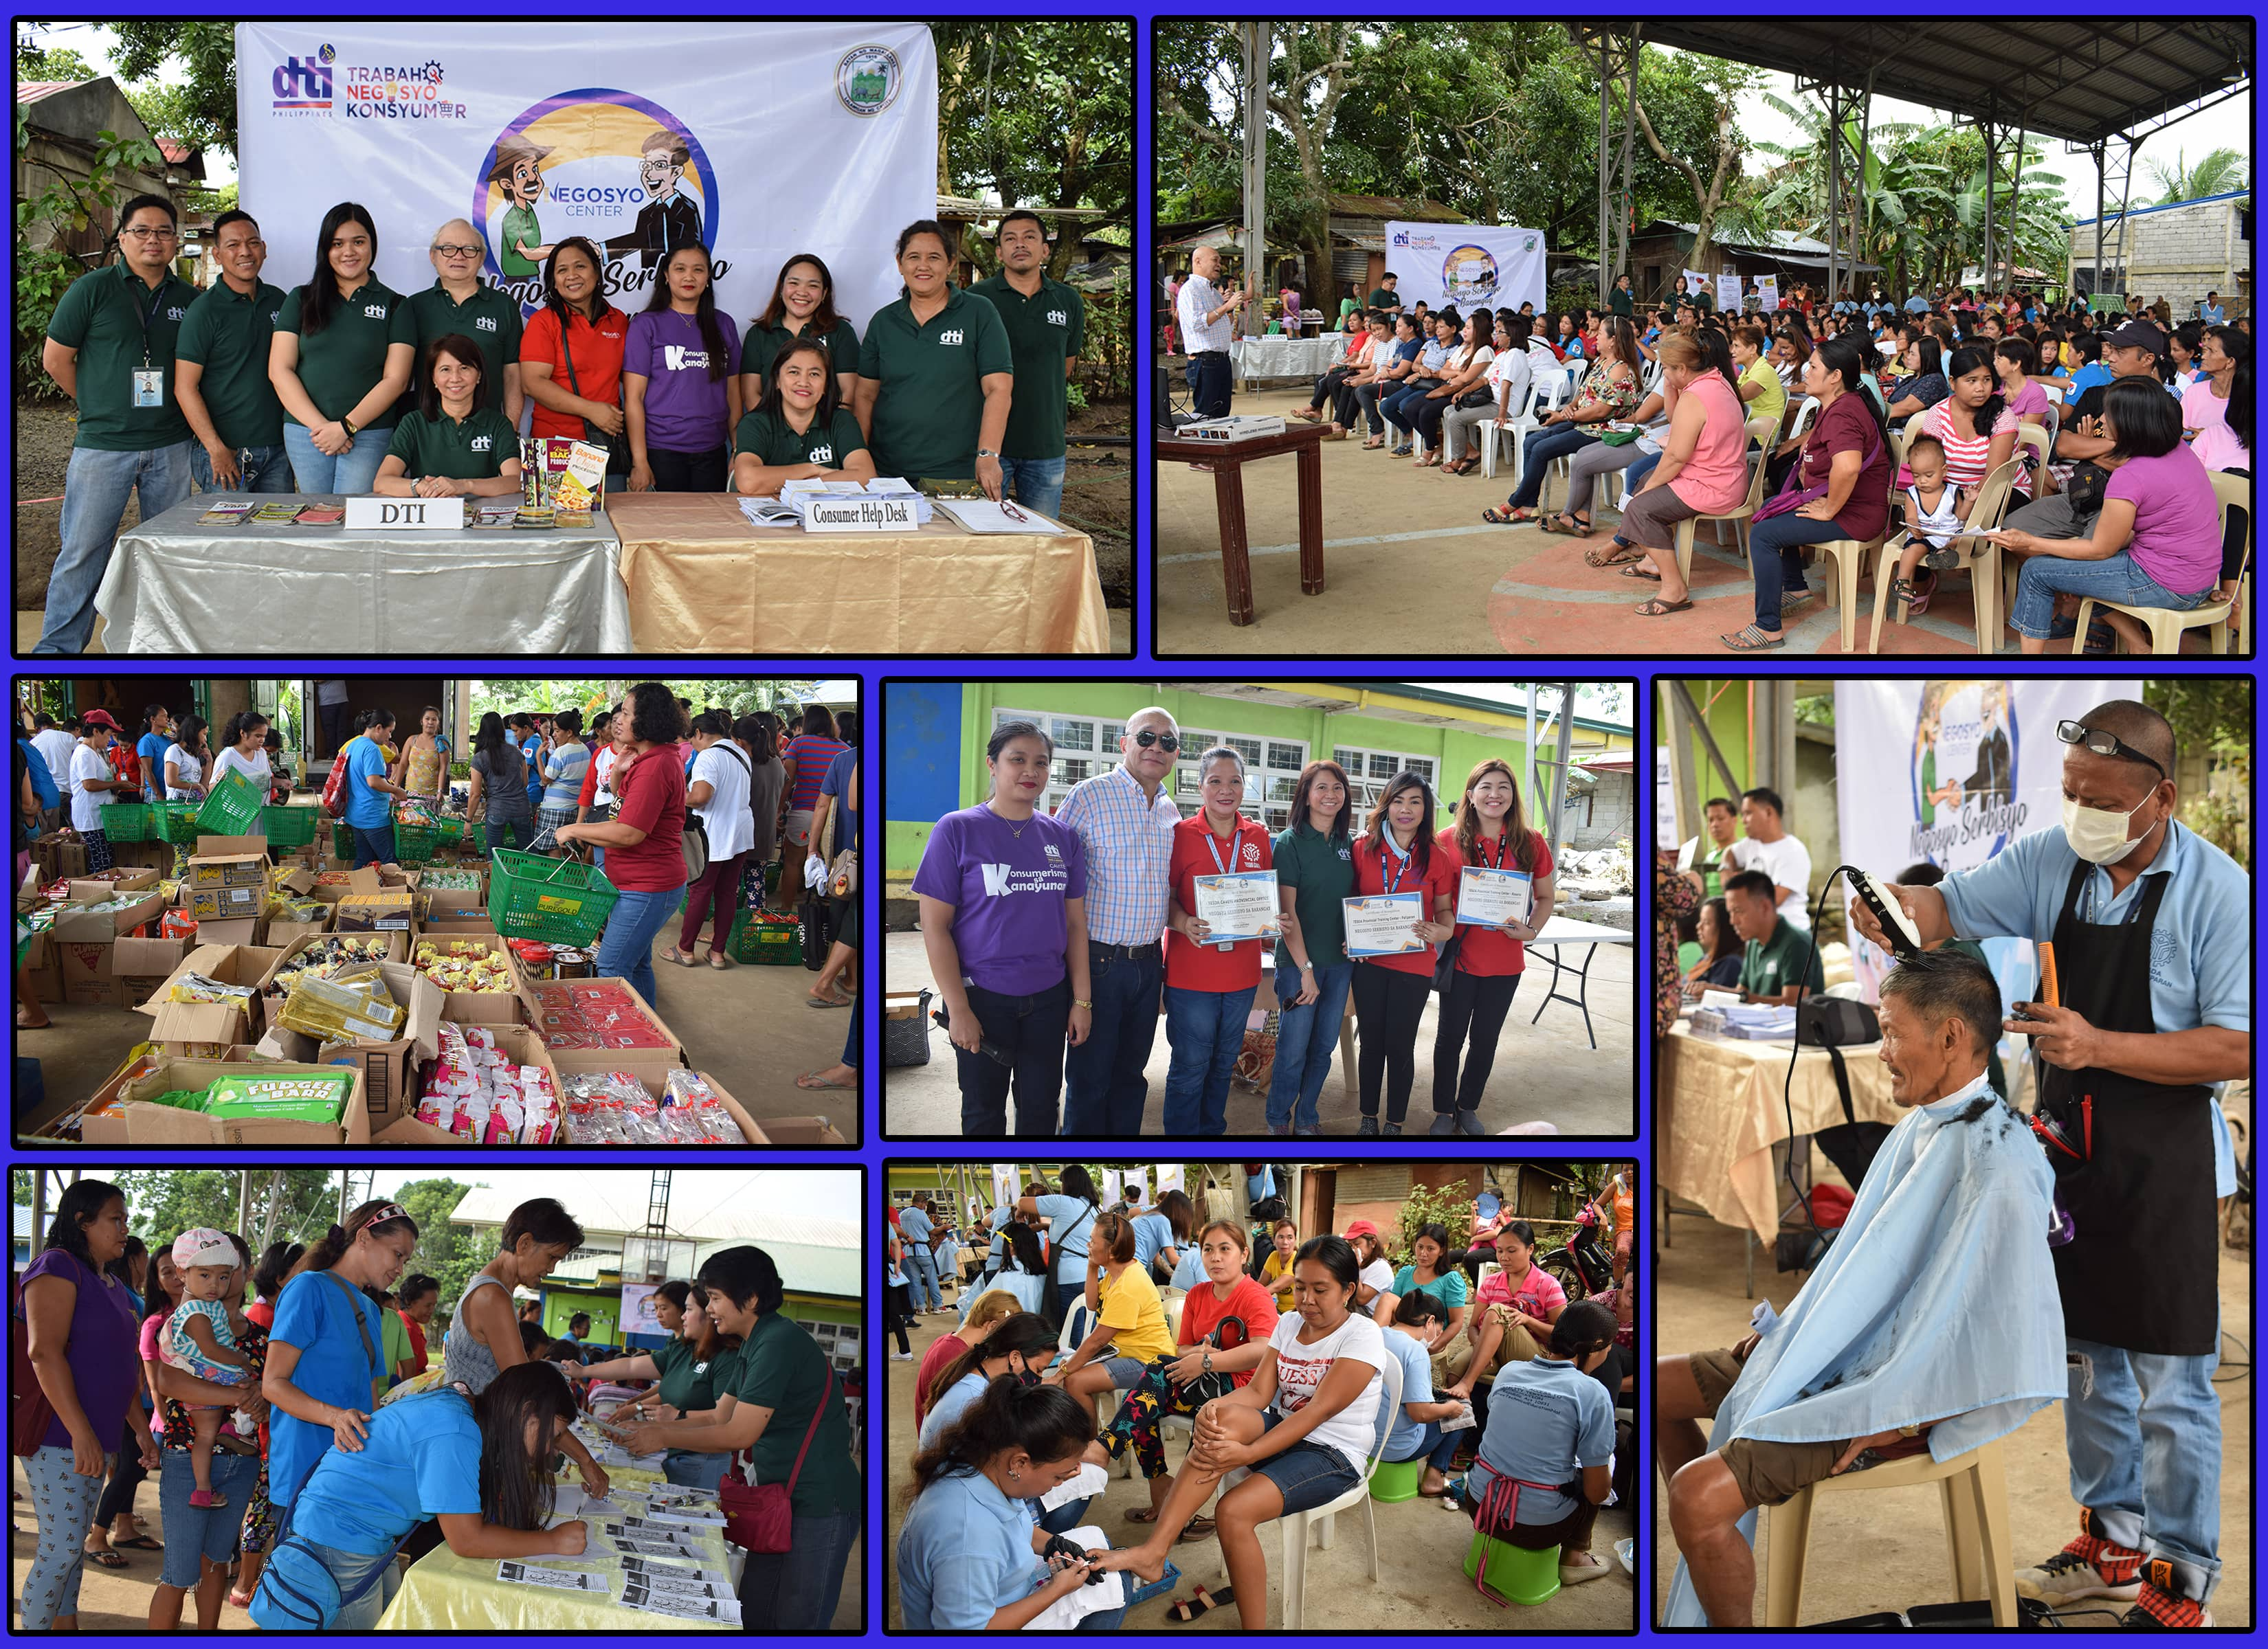 INTENSIFYING ENTREPRENEURSHIP THRU THE NEGOSYO SA BARANGAY